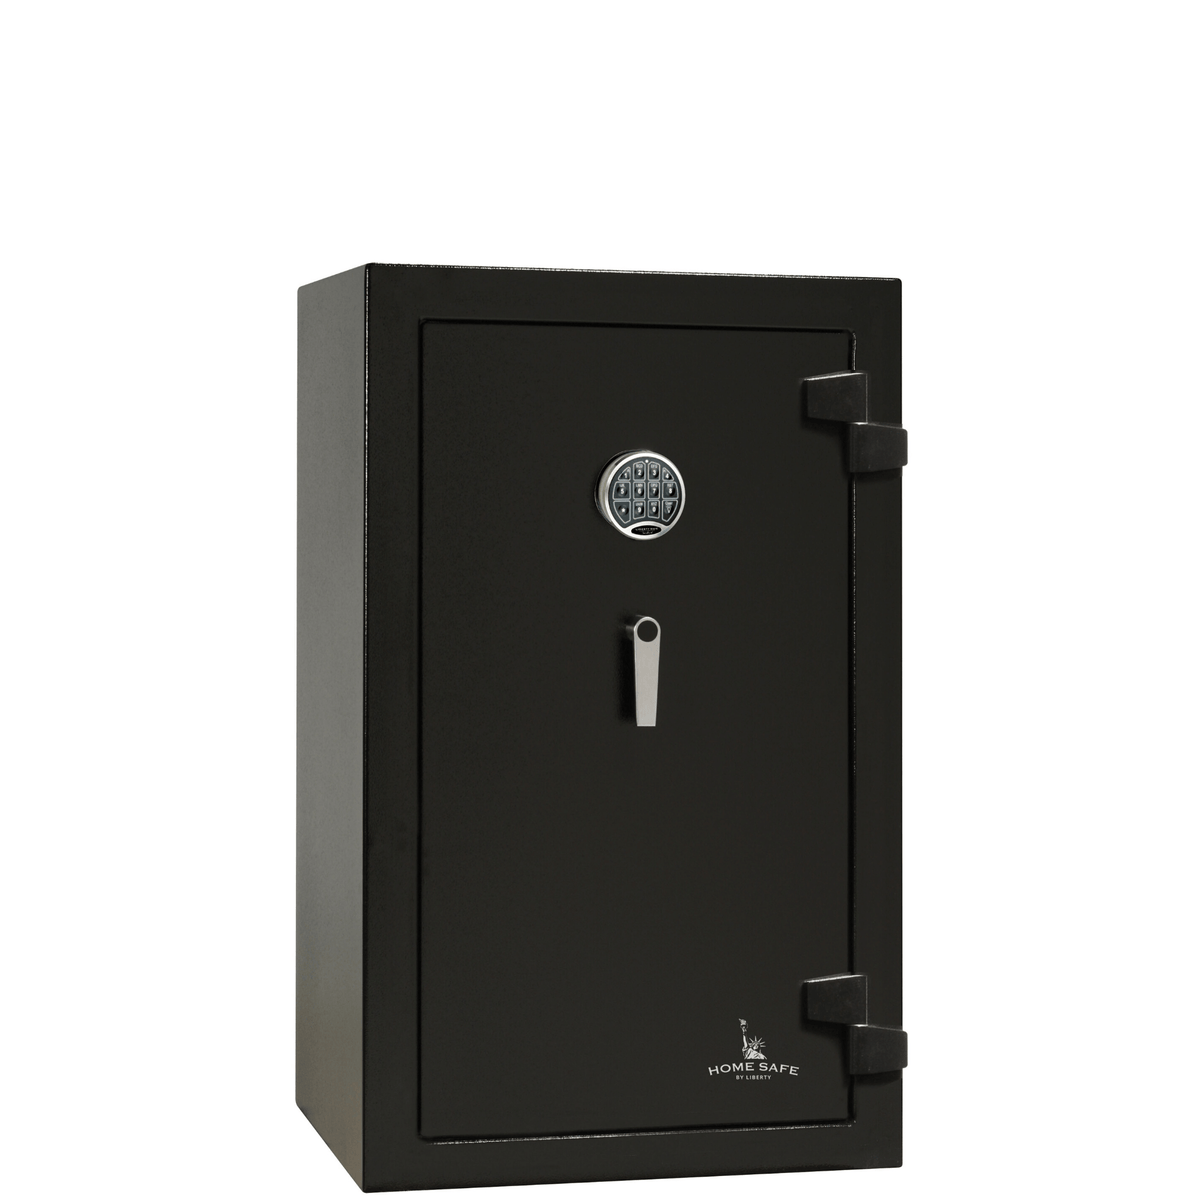 "Home Safe Series | 60 Minute Fire Protection | 17 | Dimensions 59""(H) x 24.25""(W) x 22""(D) 